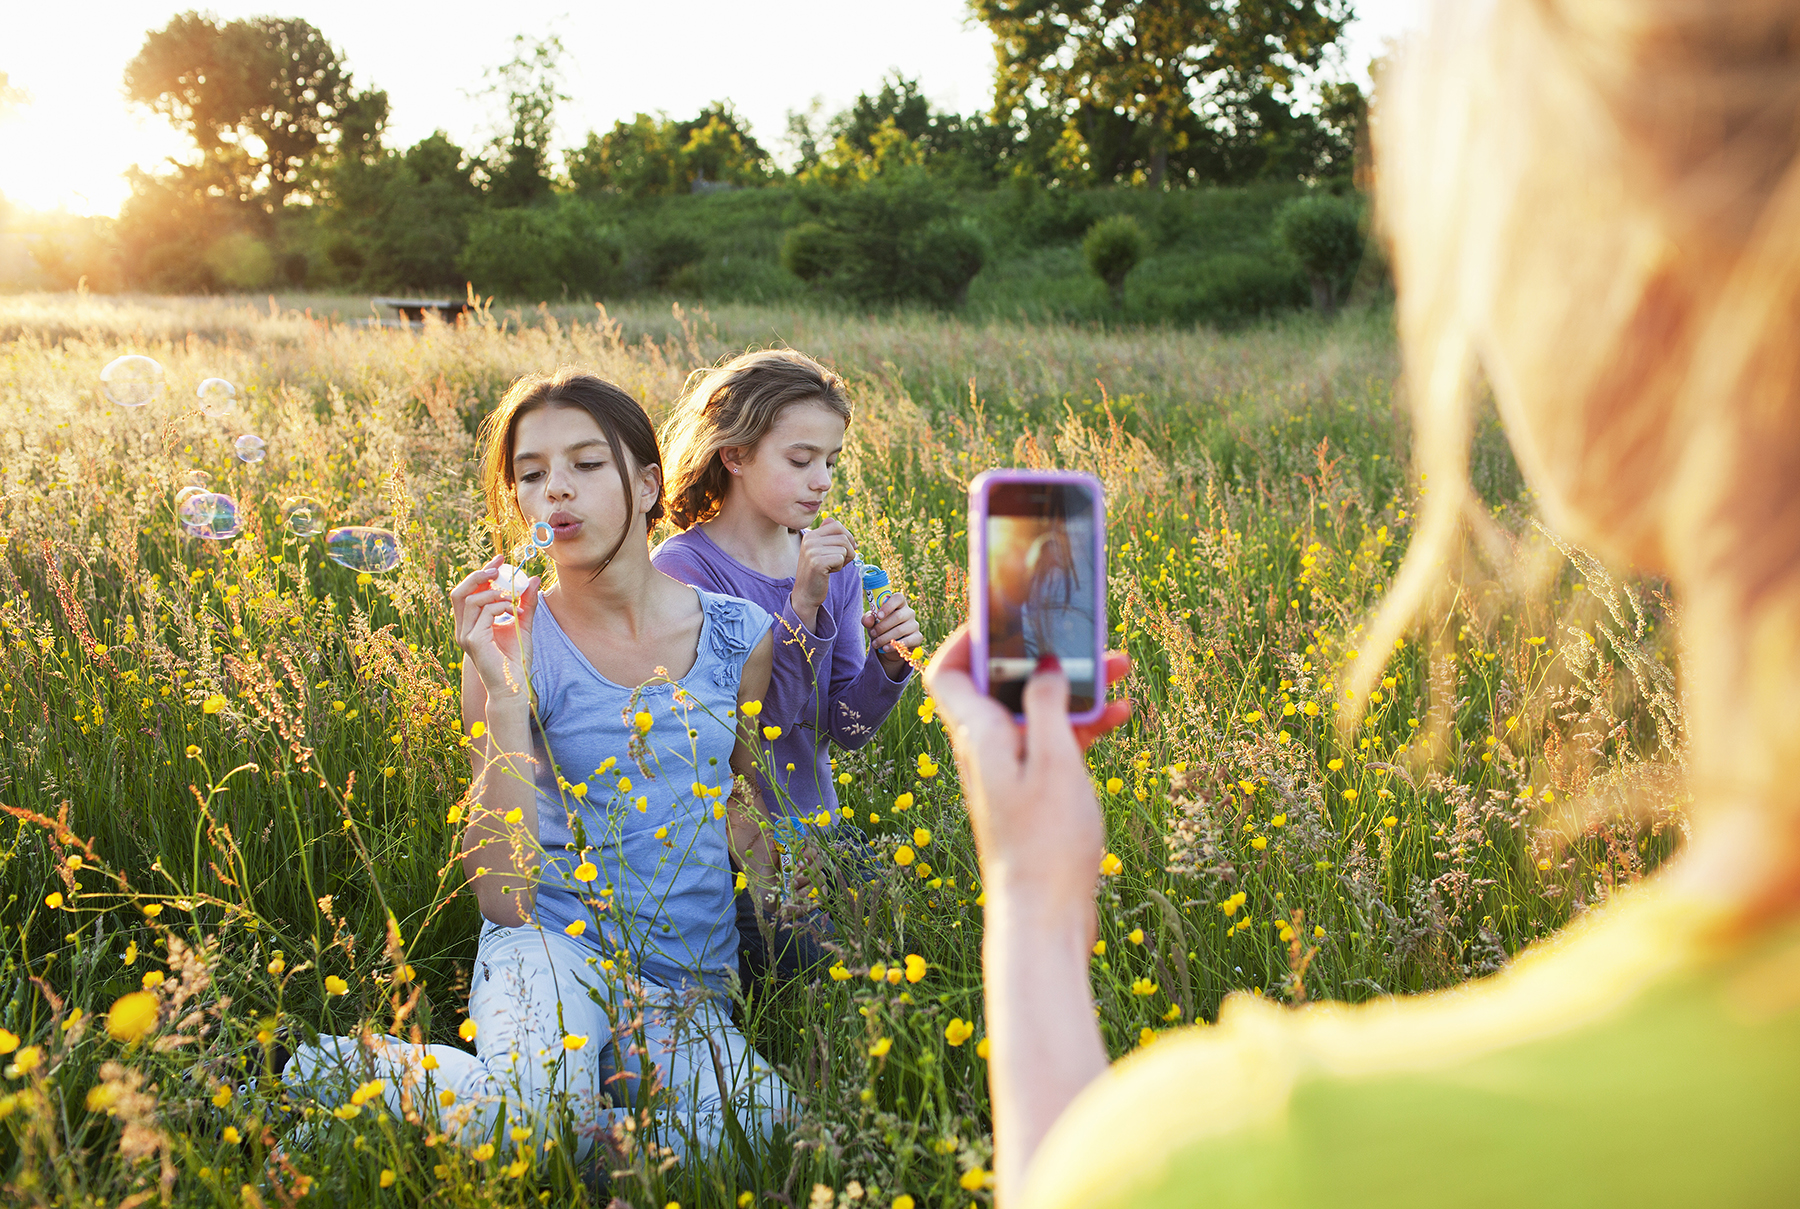 Woman taking photo of two girls in field blowing bubbles